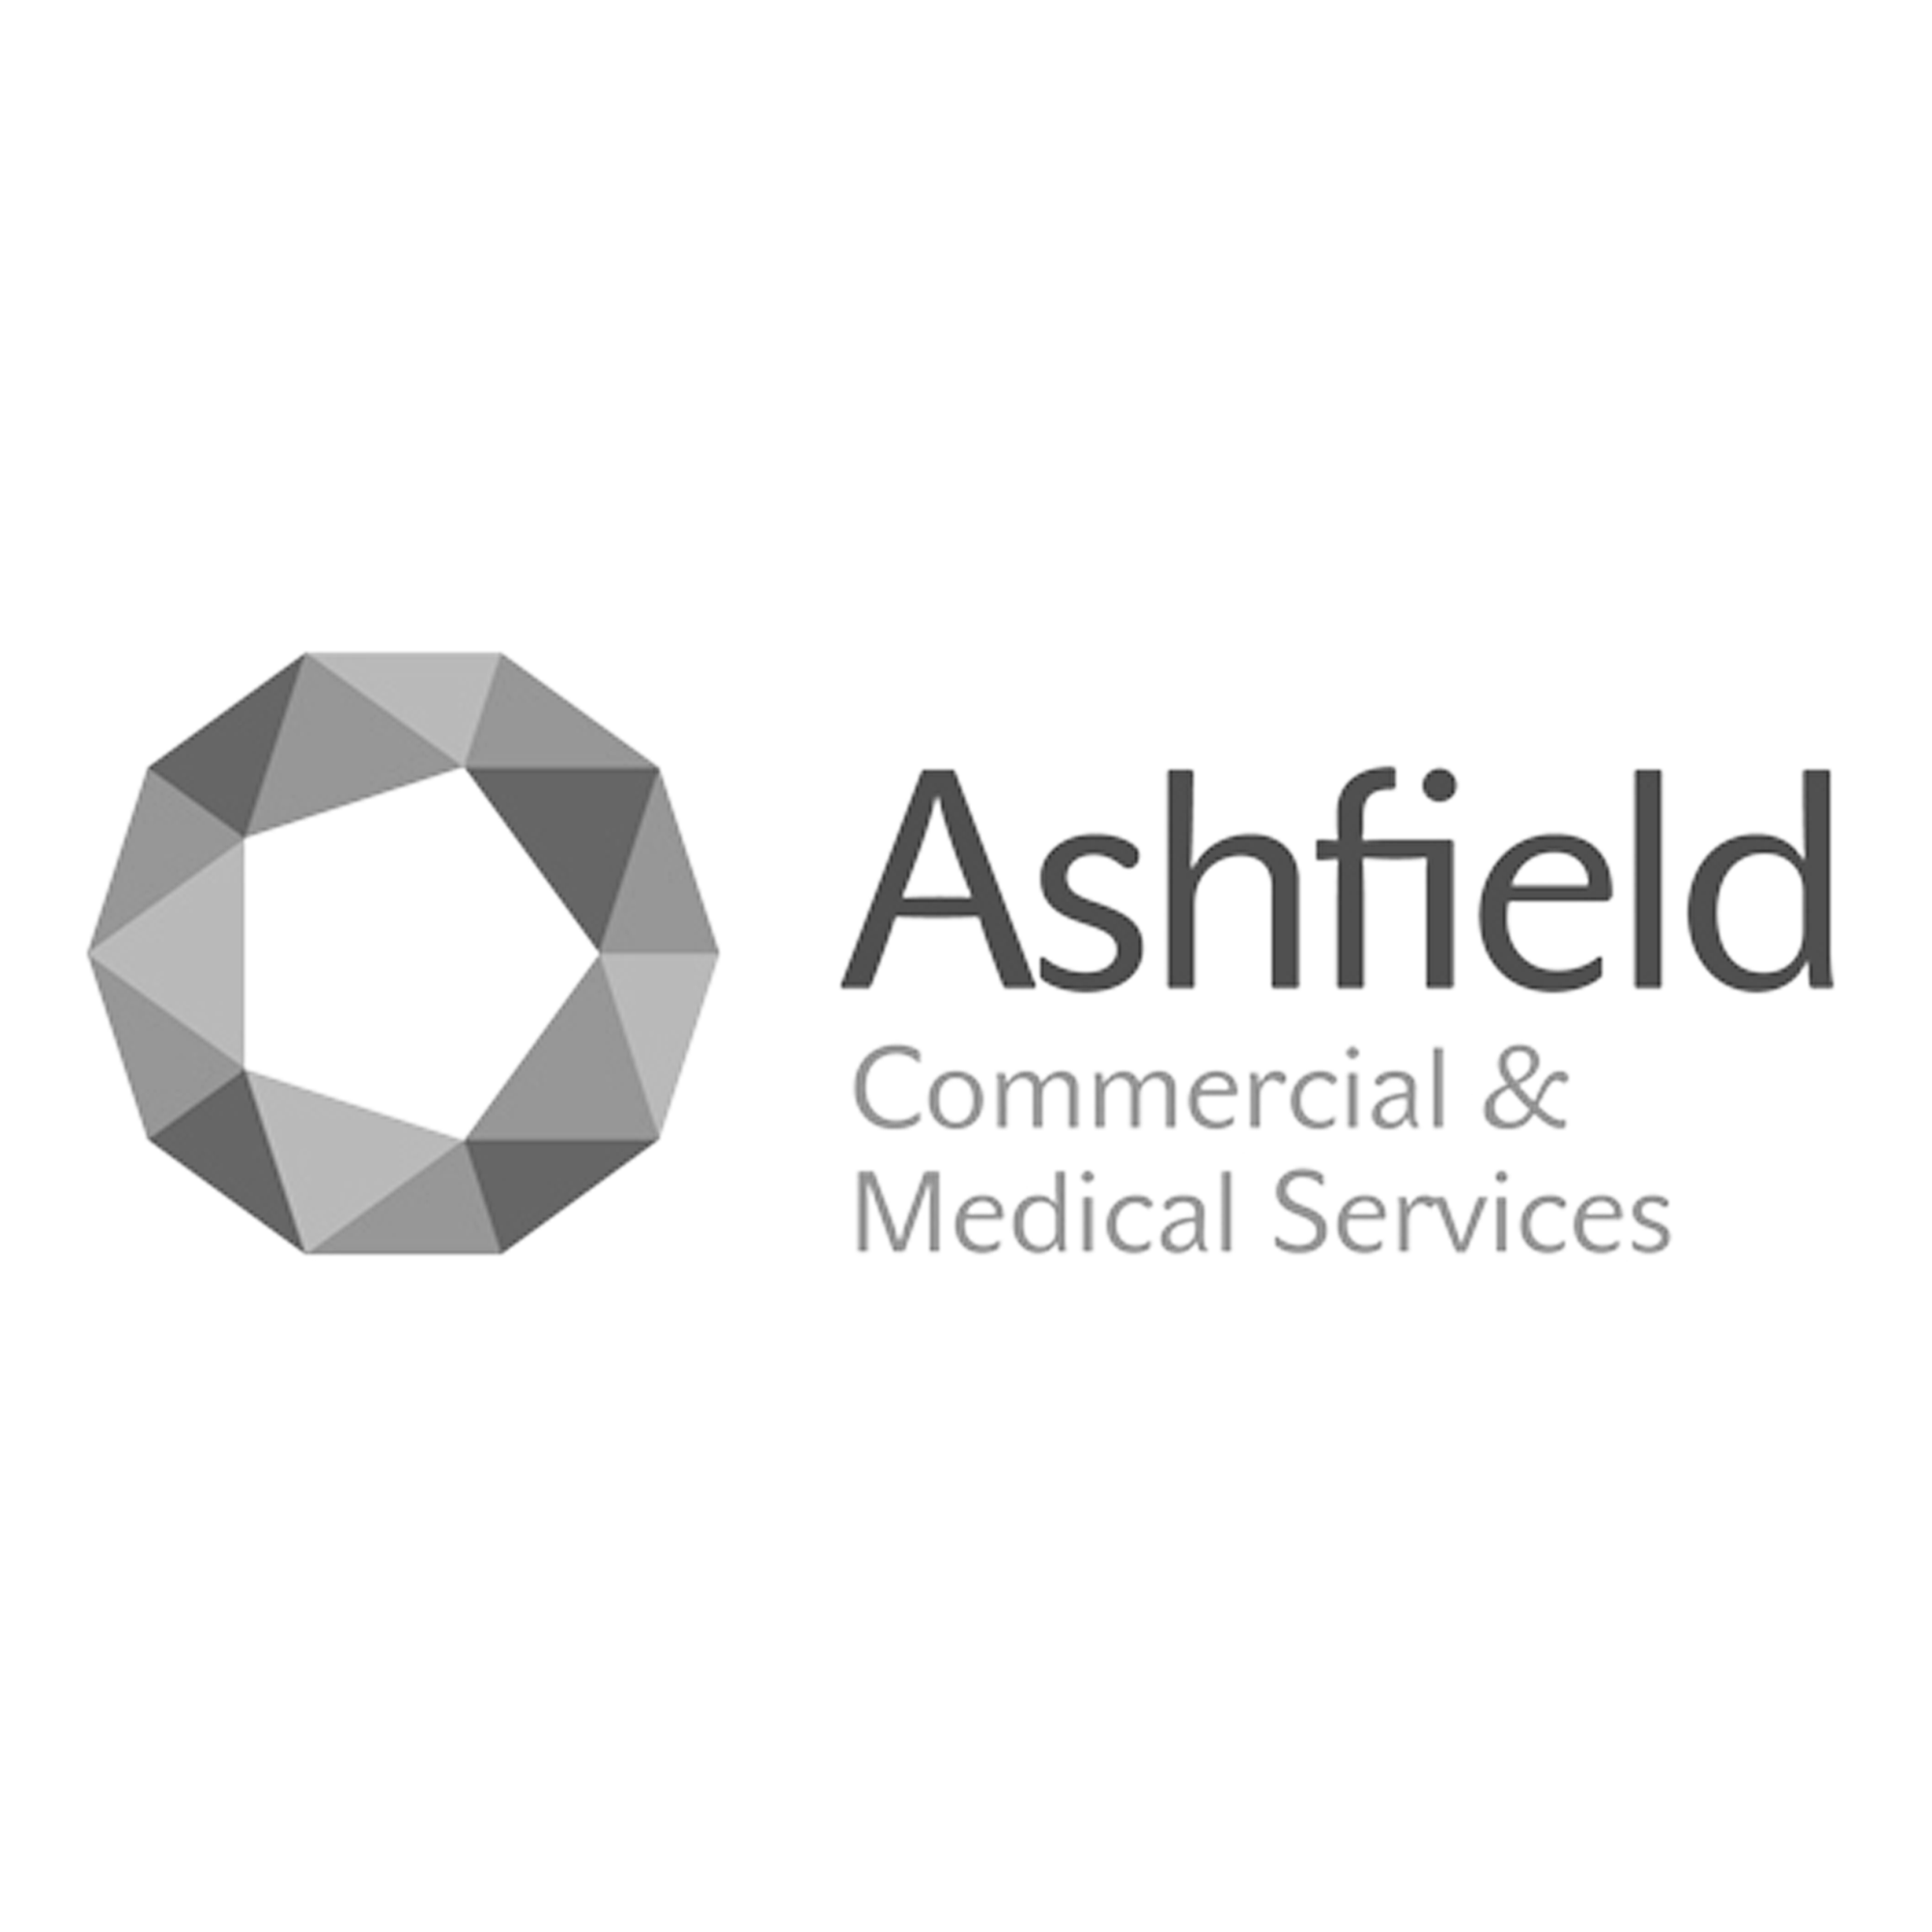 Ashfield logo_Black and white.png